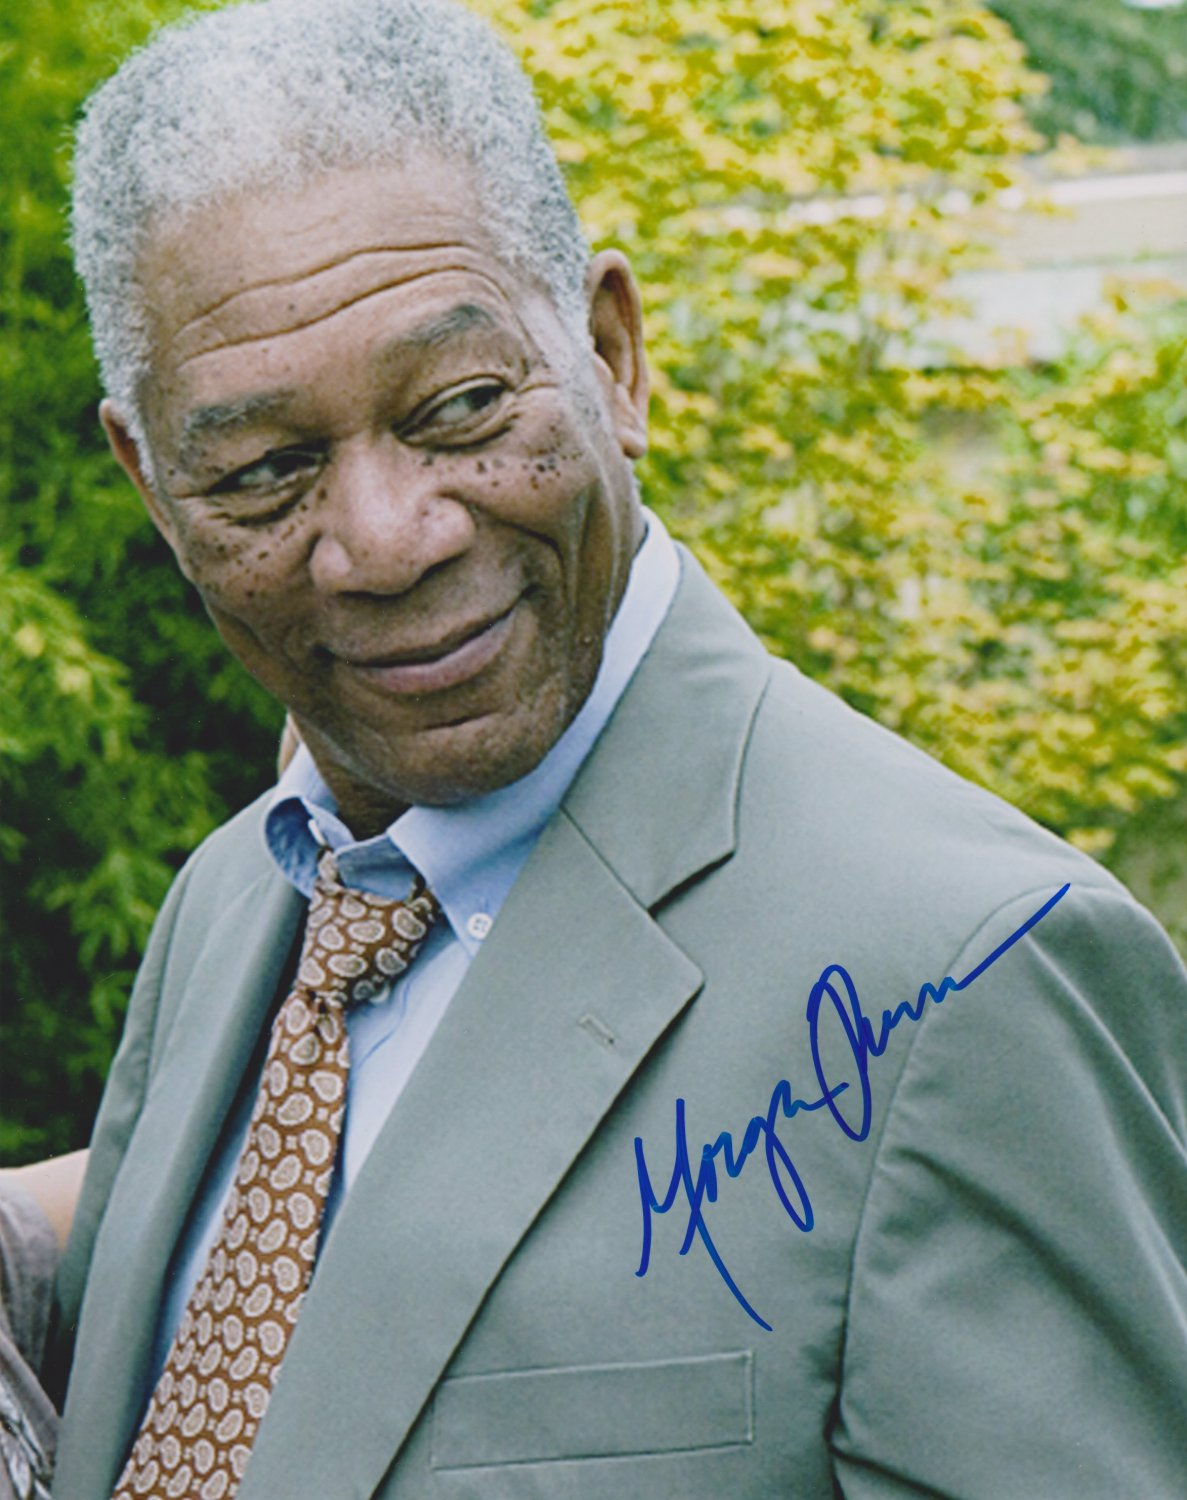 Morgan Freeman Original Hand Signed 8x10 Autographed Photo